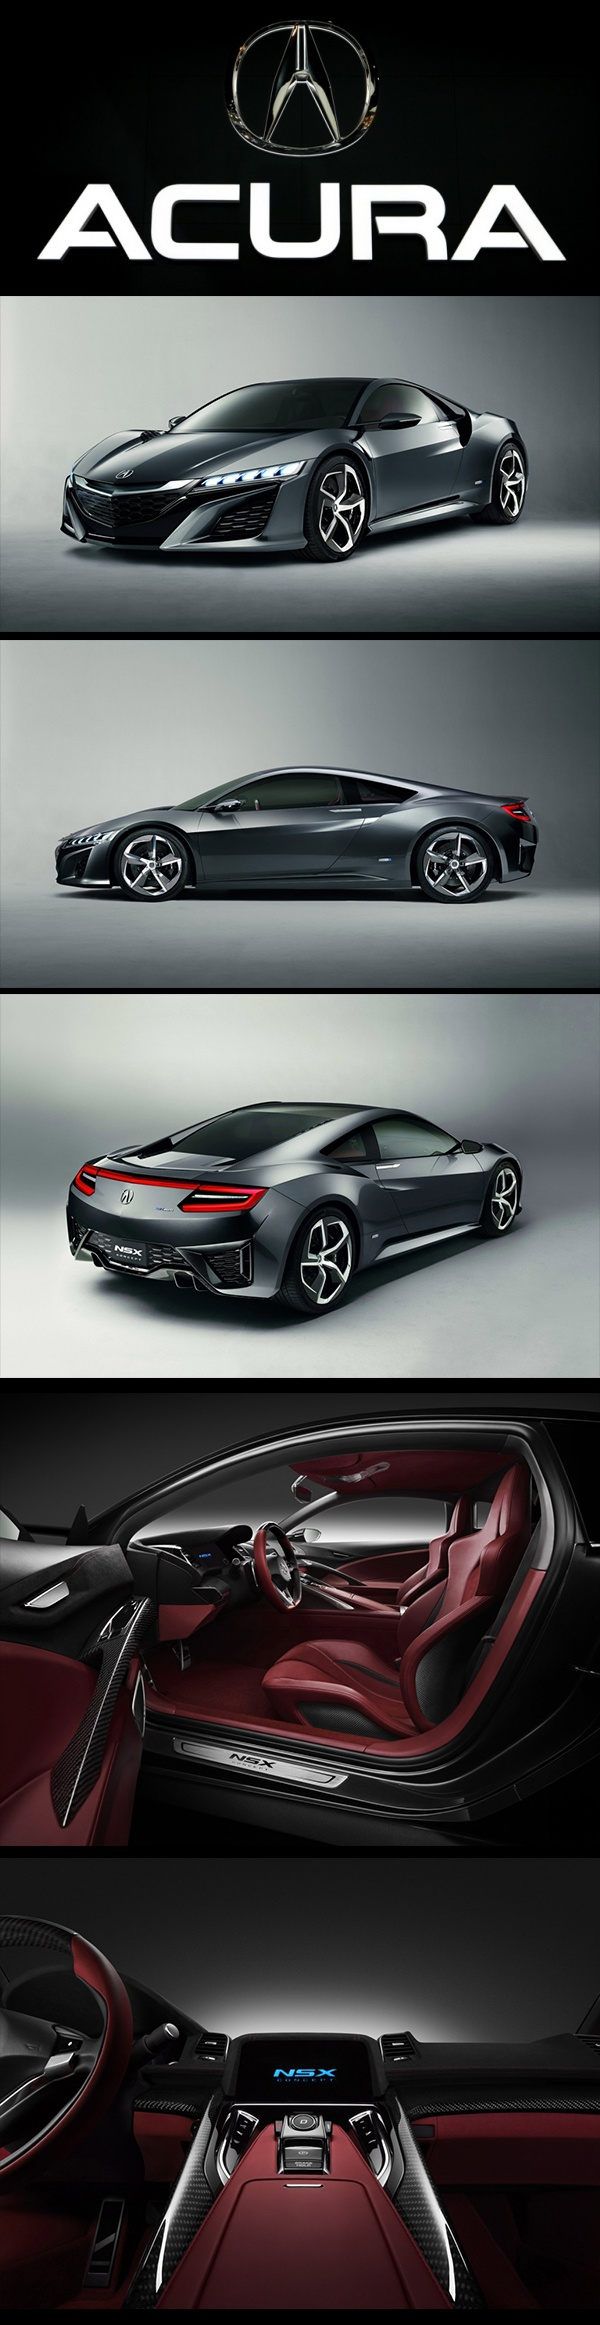 After introduced at the 2012 Detroit Auto Show as a new concept and then Honda announced the 2013 Acura NSX price range, now it's expected to be one of the top class luxury cars. As for the 2013 Acura NSX price range, the car reportedly will go on sale at the price range of $85,000 – $140,500 and expected will be not far from it. The car looks great, and even manages to look a little like the original, so that why the $140,500 is the perfect options for the 2013 Acura NSX price.